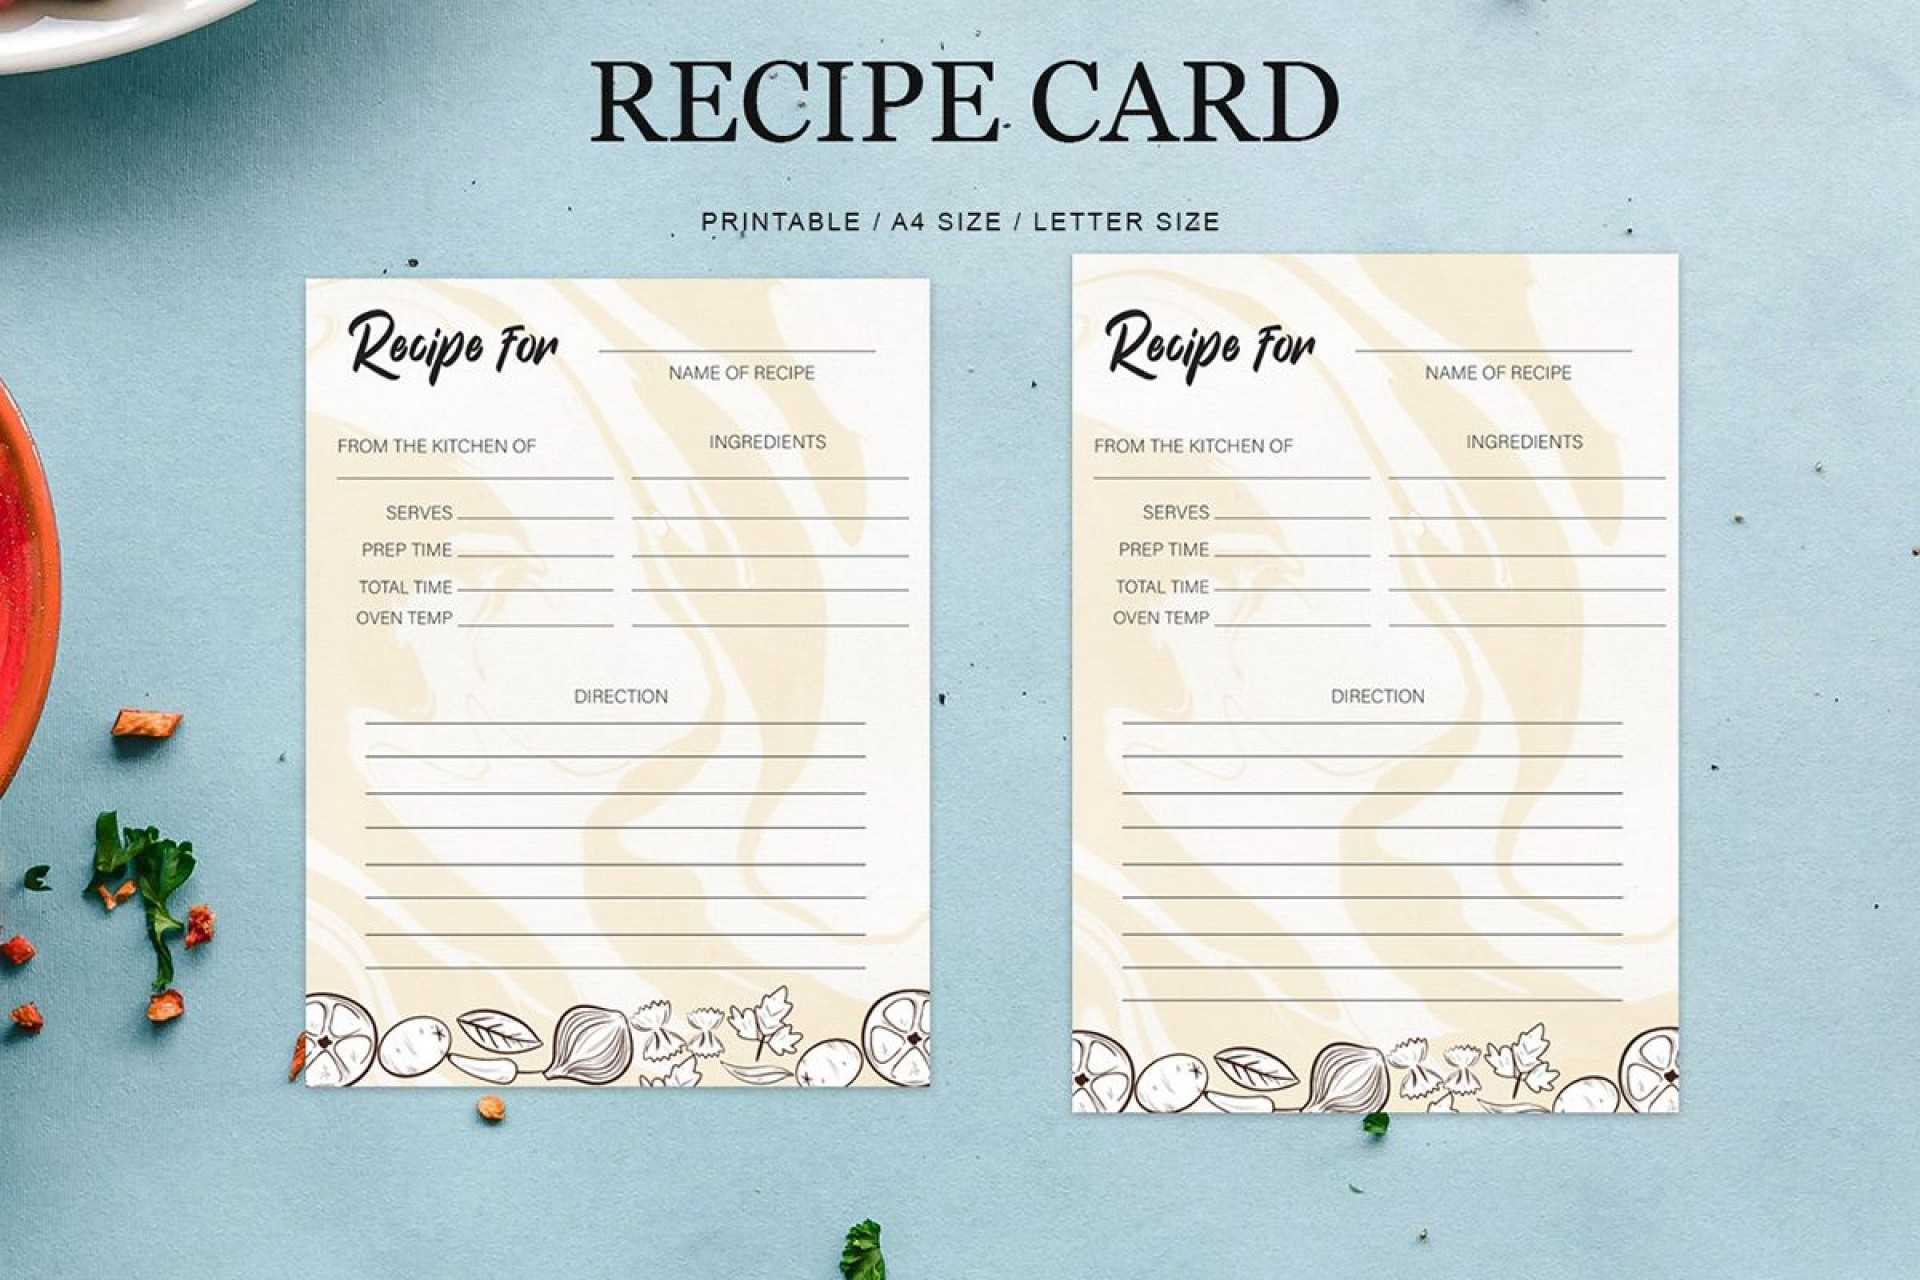 009 Formidable Editable Recipe Card Template High Resolution  Free For Microsoft Word 4x6 Page1920